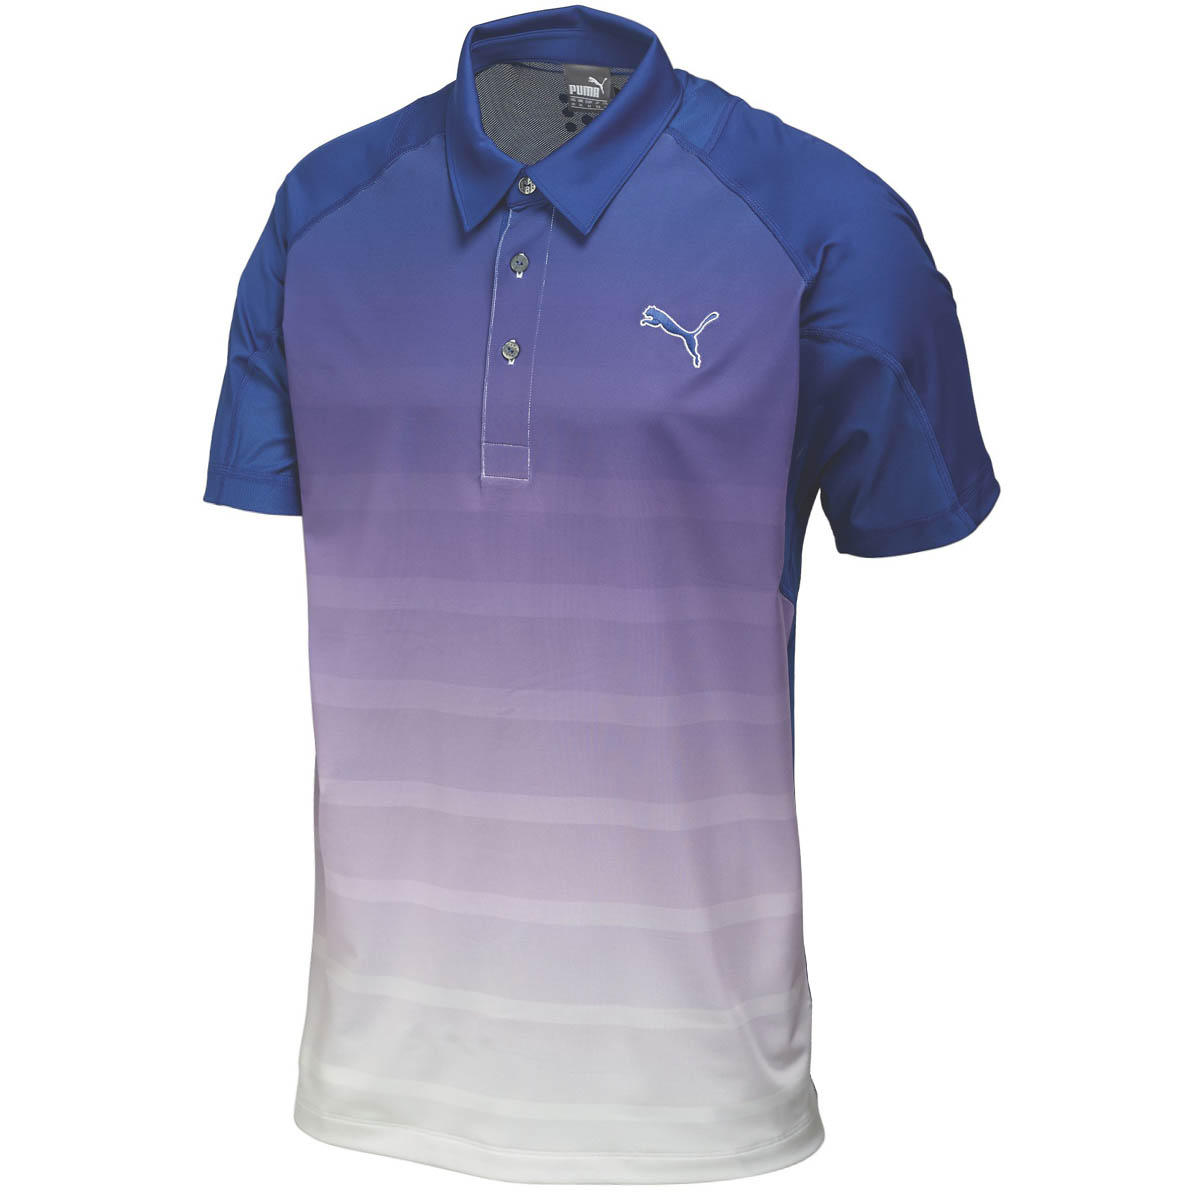 Puma golf mens titan stripe polo shirt 569099 drycell for Mens puma golf shirts